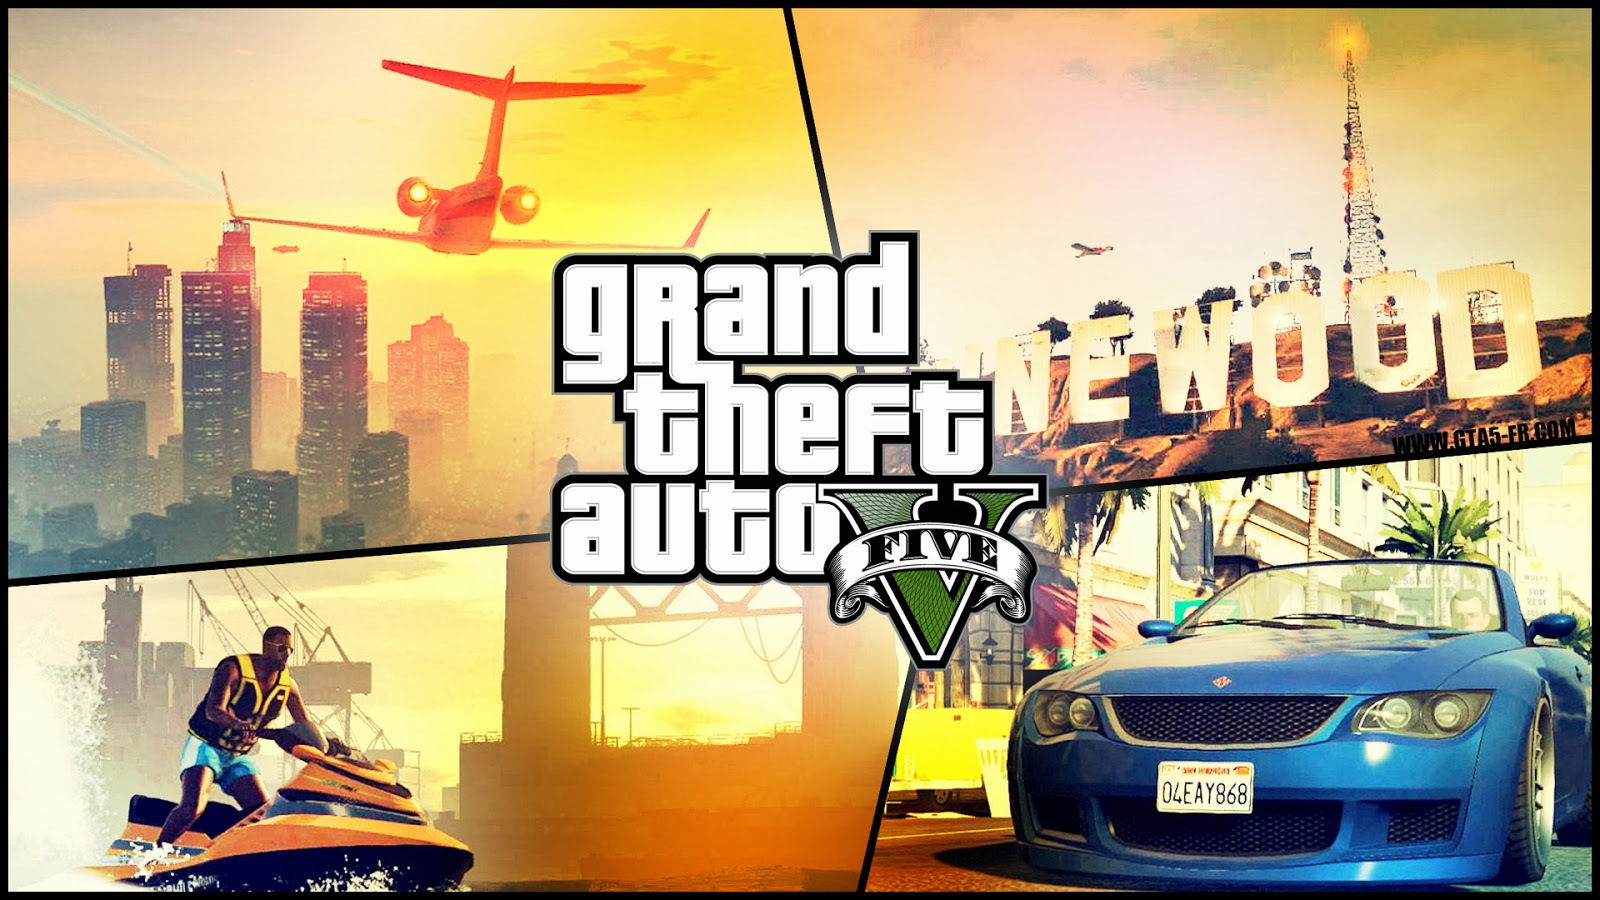 You Know This Wallpaper Make Me Remember The GTA San Andreas Game Color Nuances Look Like But Must Be Is V